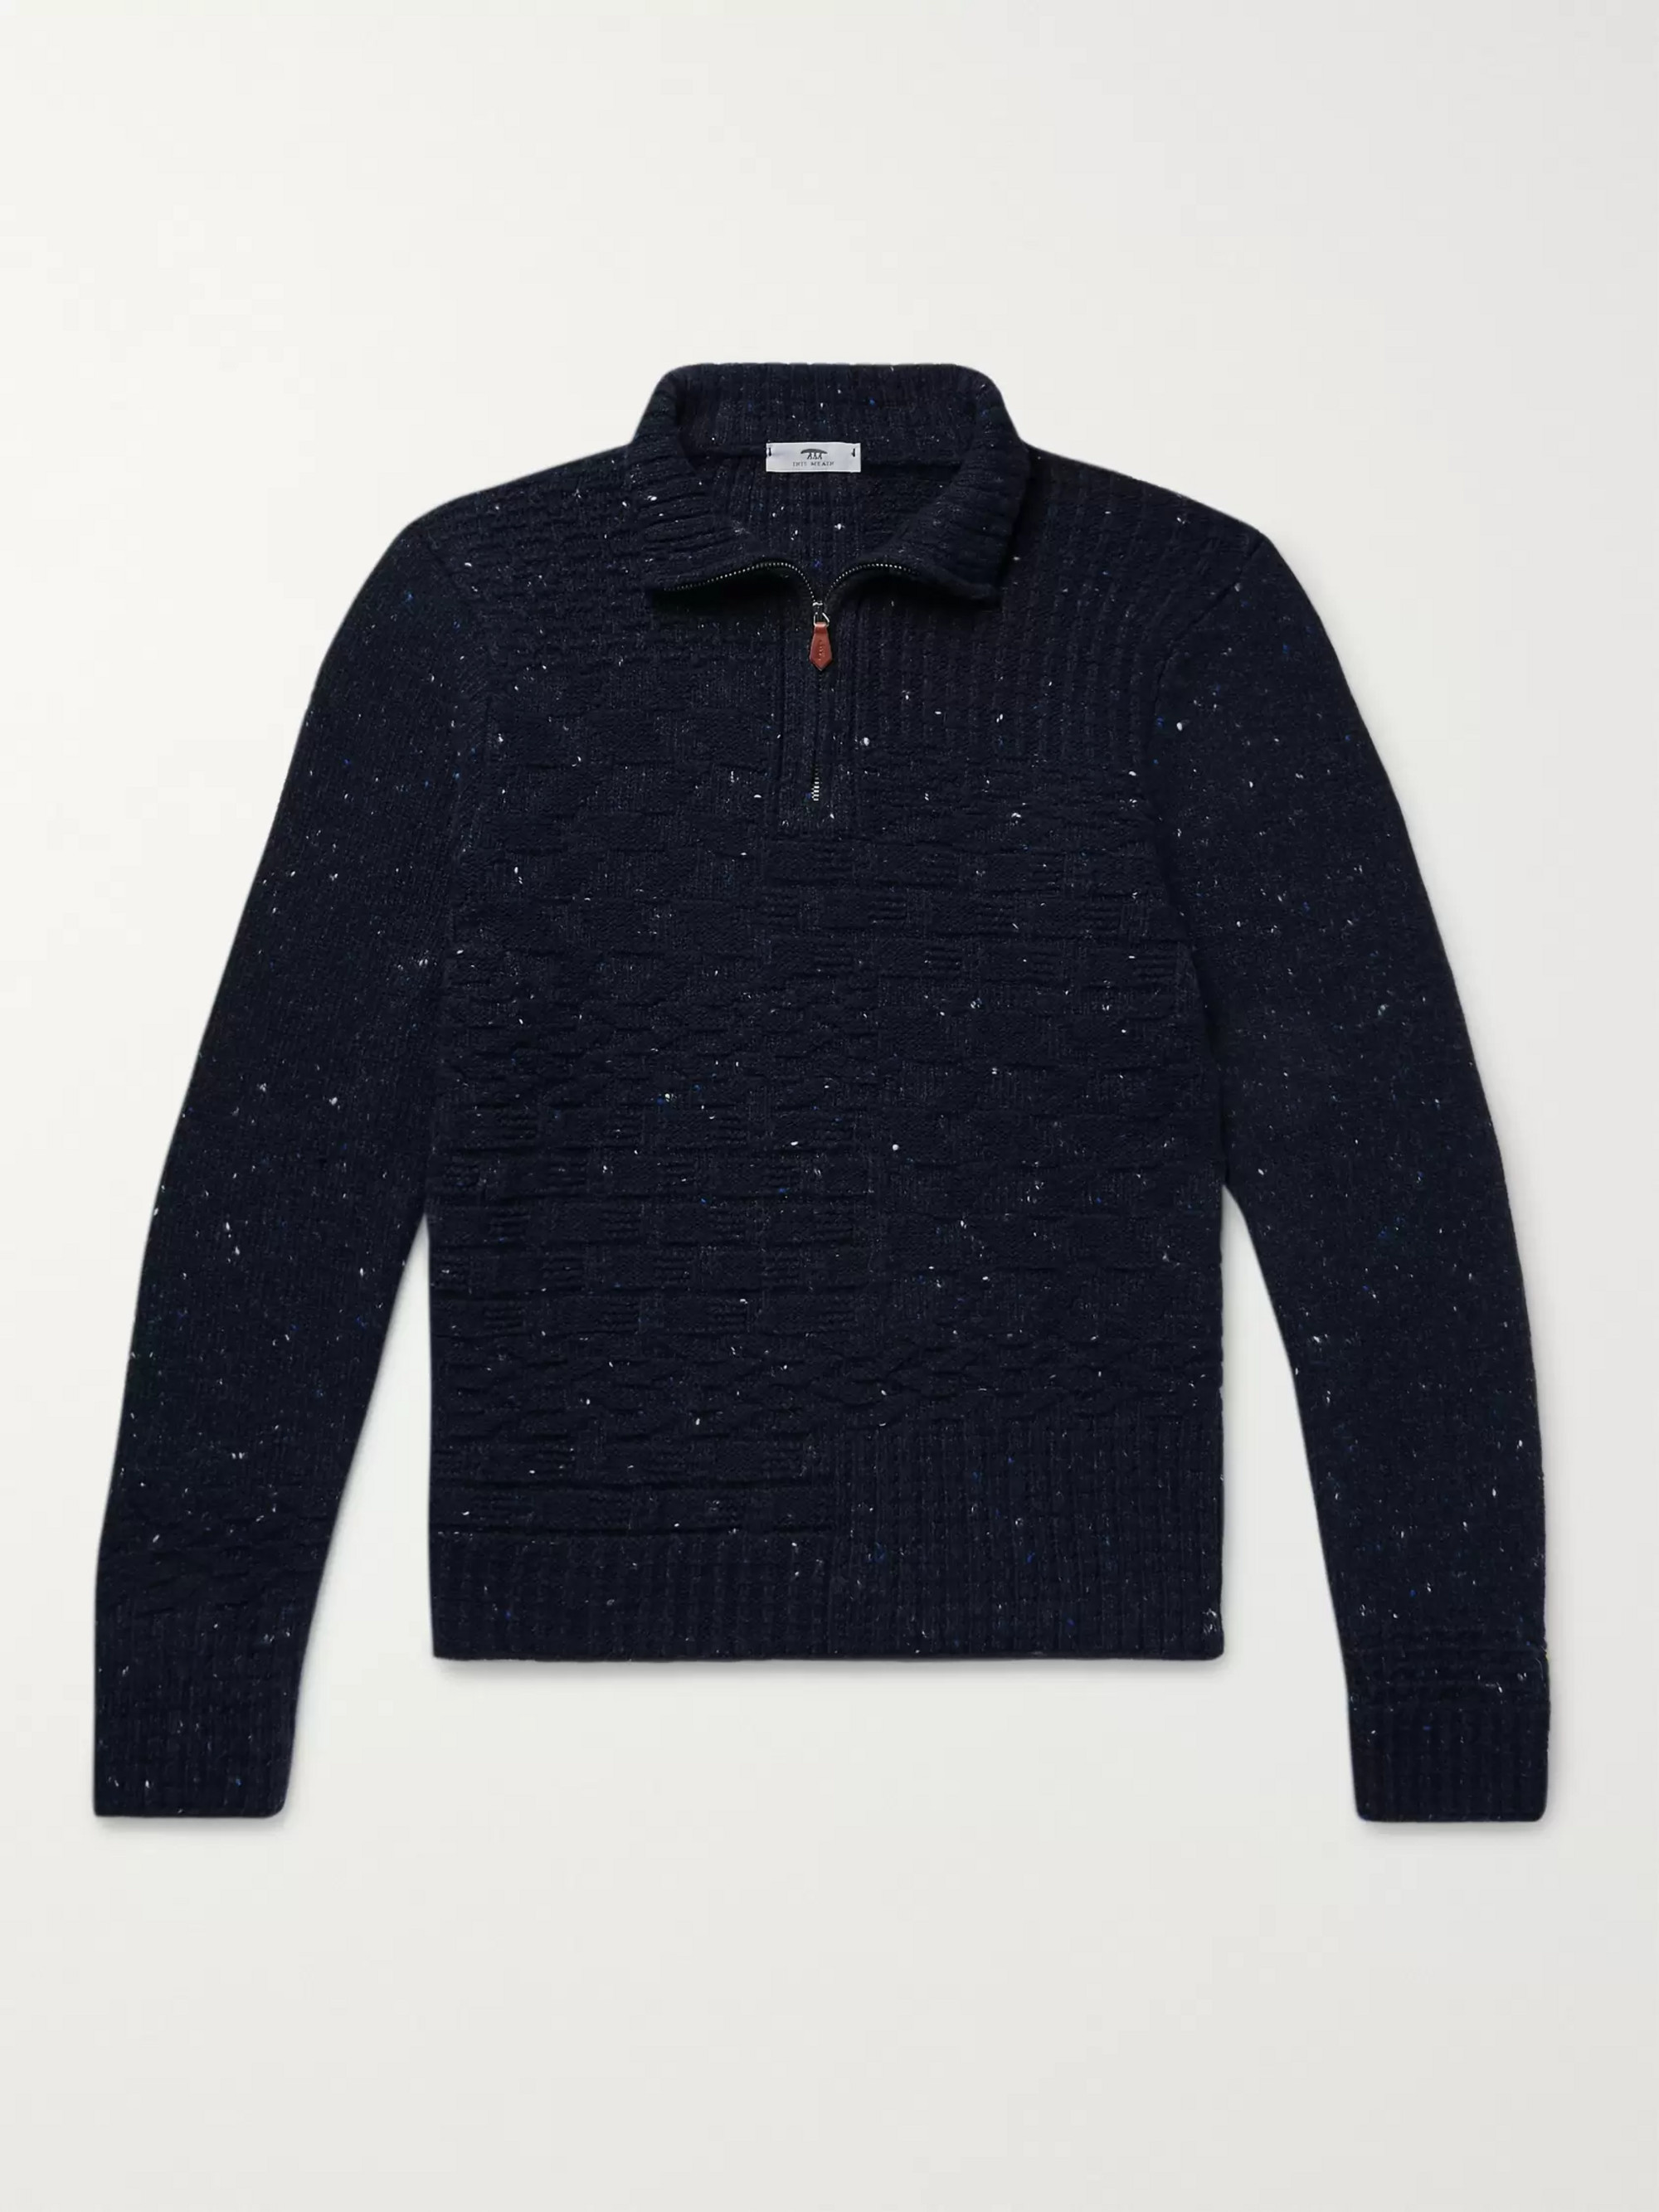 Inis Meáin Donegal Merino Wool and Cashmere-Blend Half-Zip Sweater